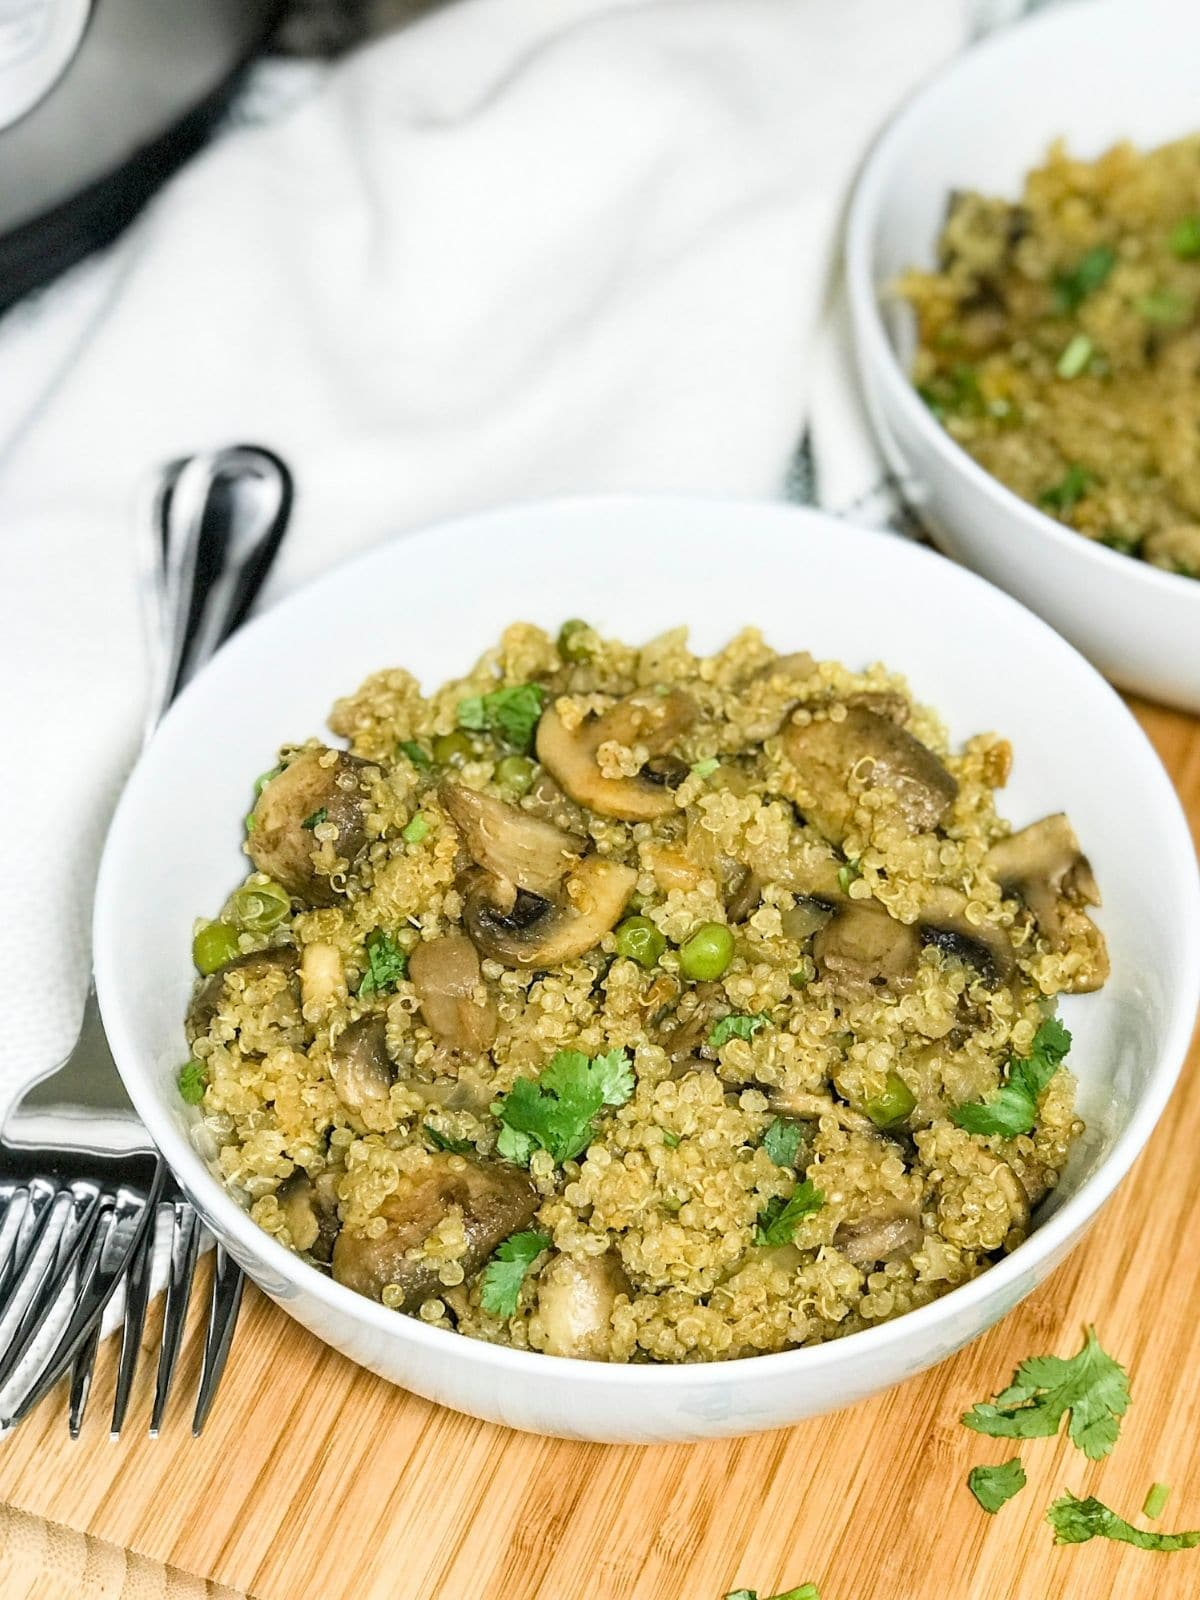 A bowl is filled with mushroom quinoa and topped with cilantro